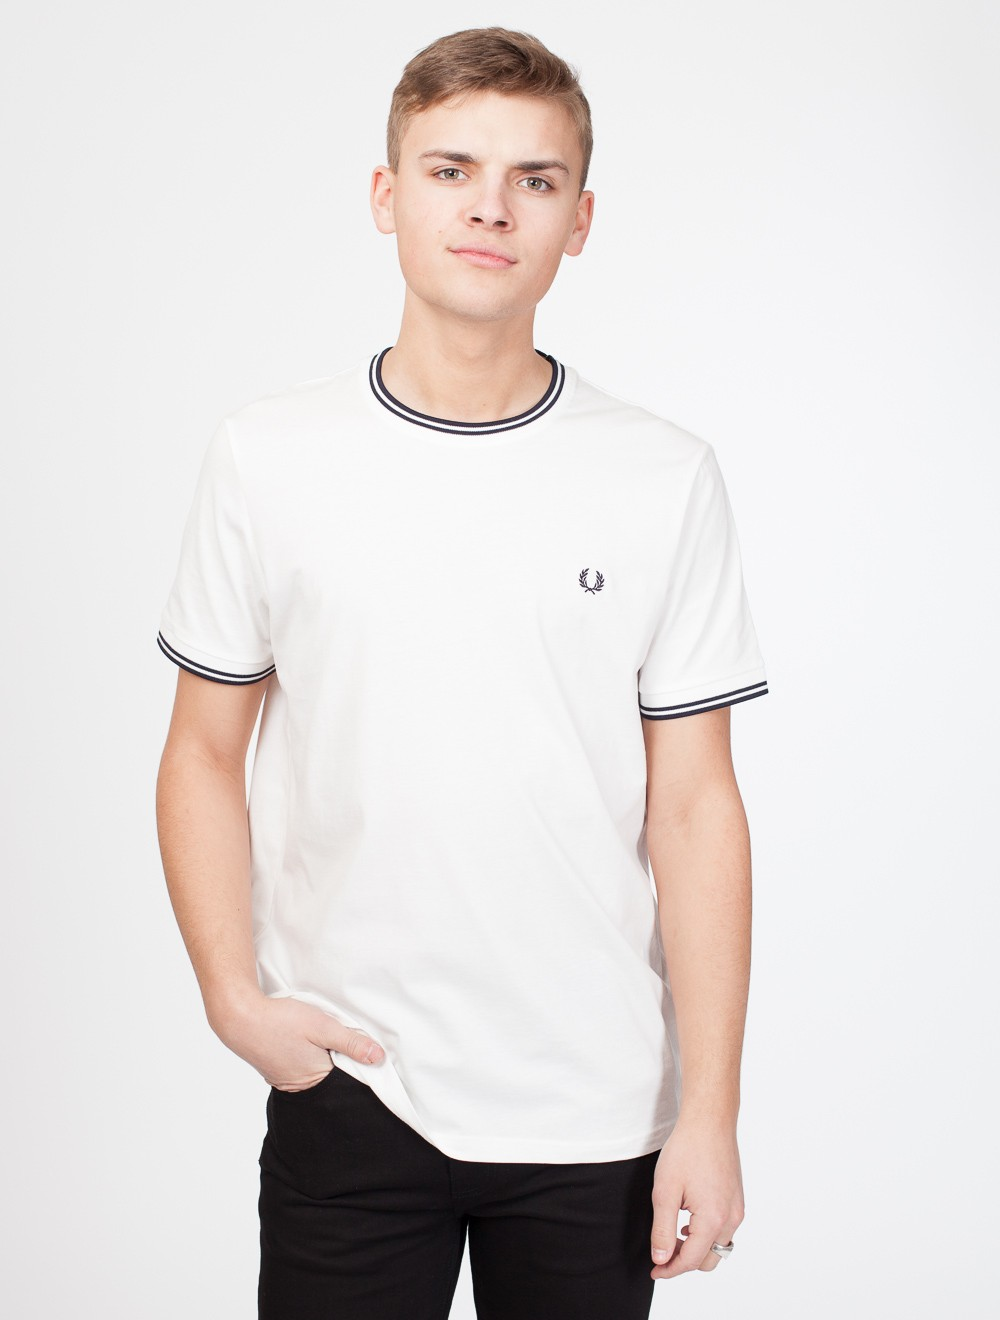 bb87a2602 Fred Perry | Twin Tipped T-Shirt Snow White - T-skjorte